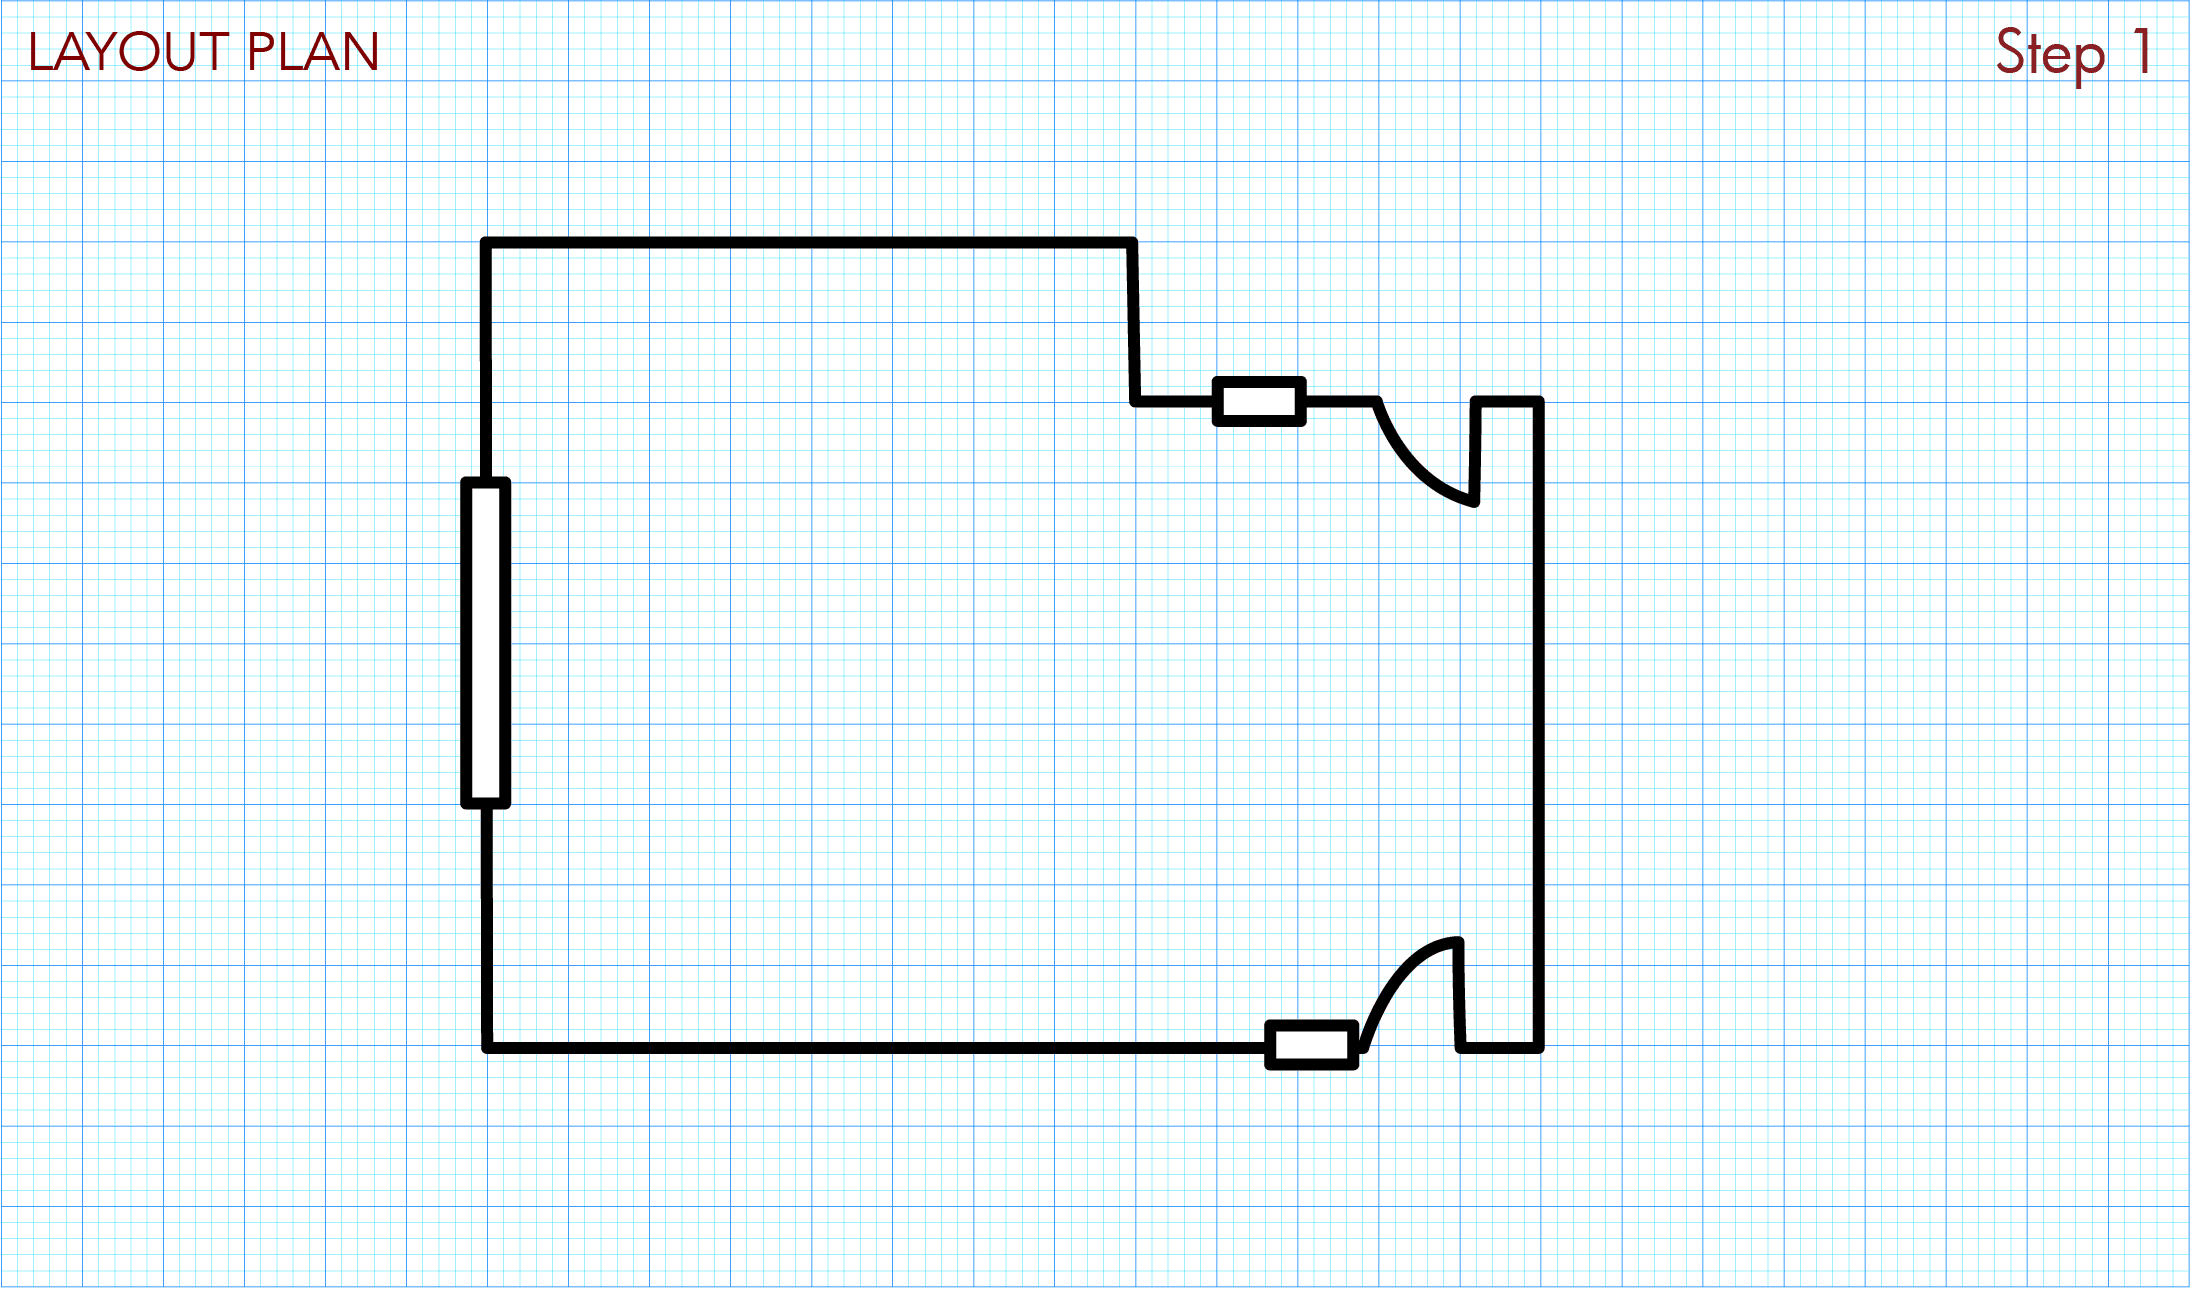 Draw rough room layout